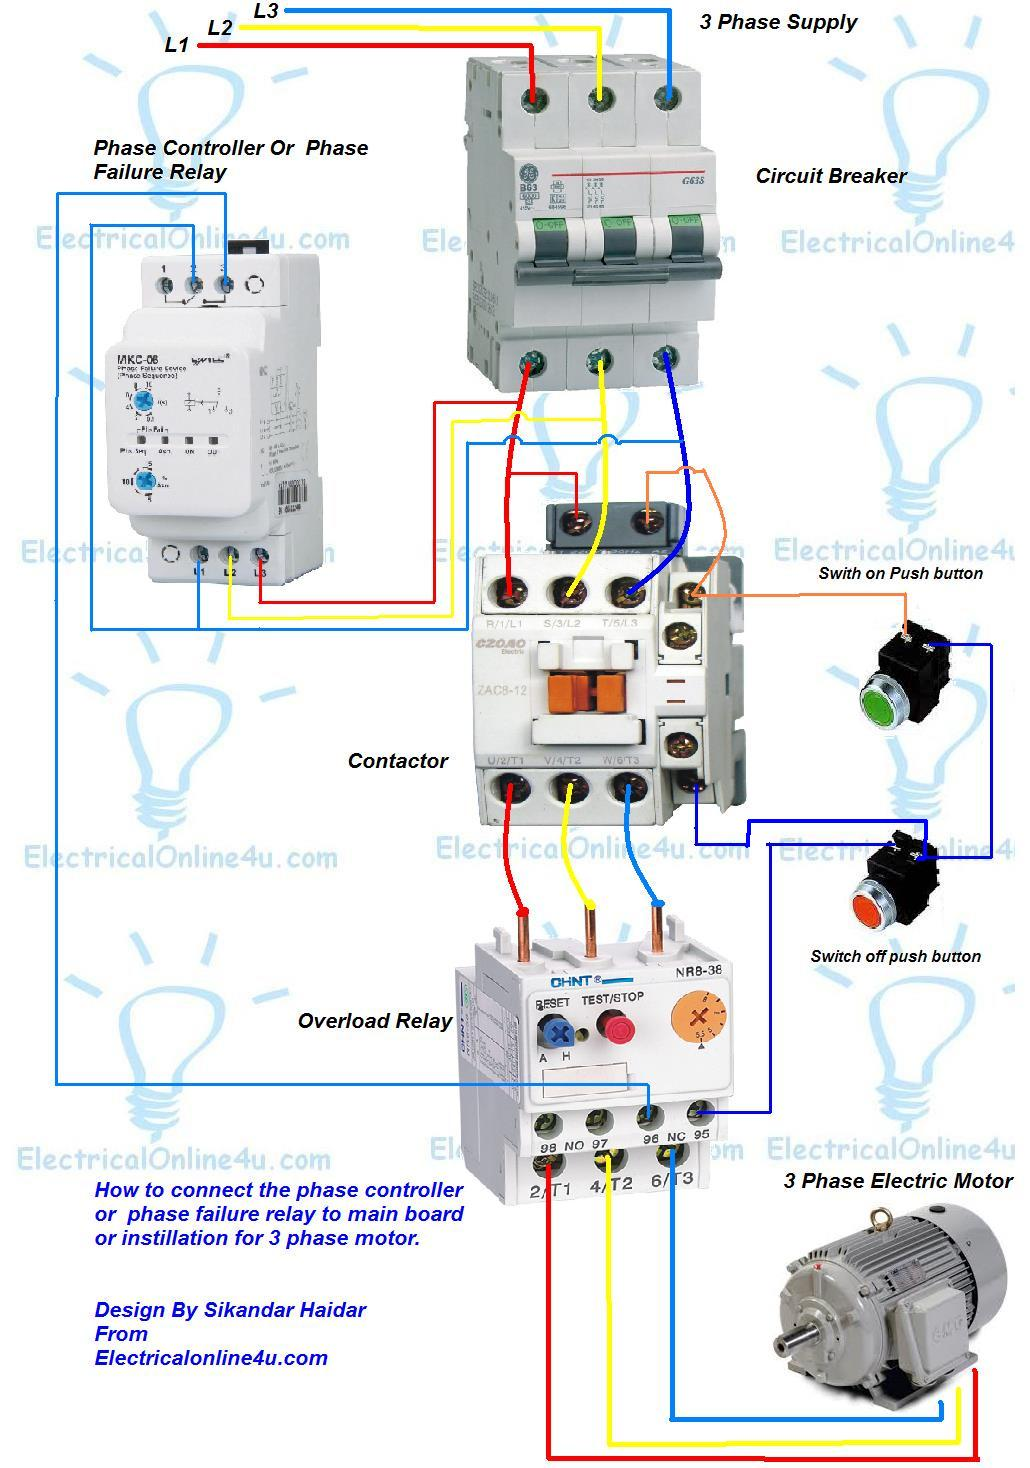 Phase%2Bfailure%2Brelay%2B %2Bphase%2Bcontroller%2Binstilaion%2Bin%2B3%2Bphase%2BMain%2Bboard%2Bor%2Bfor%2B3%2Bphase%2Bmotor phase controller wiring phase failure relay diagram electrical three phase wiring at n-0.co